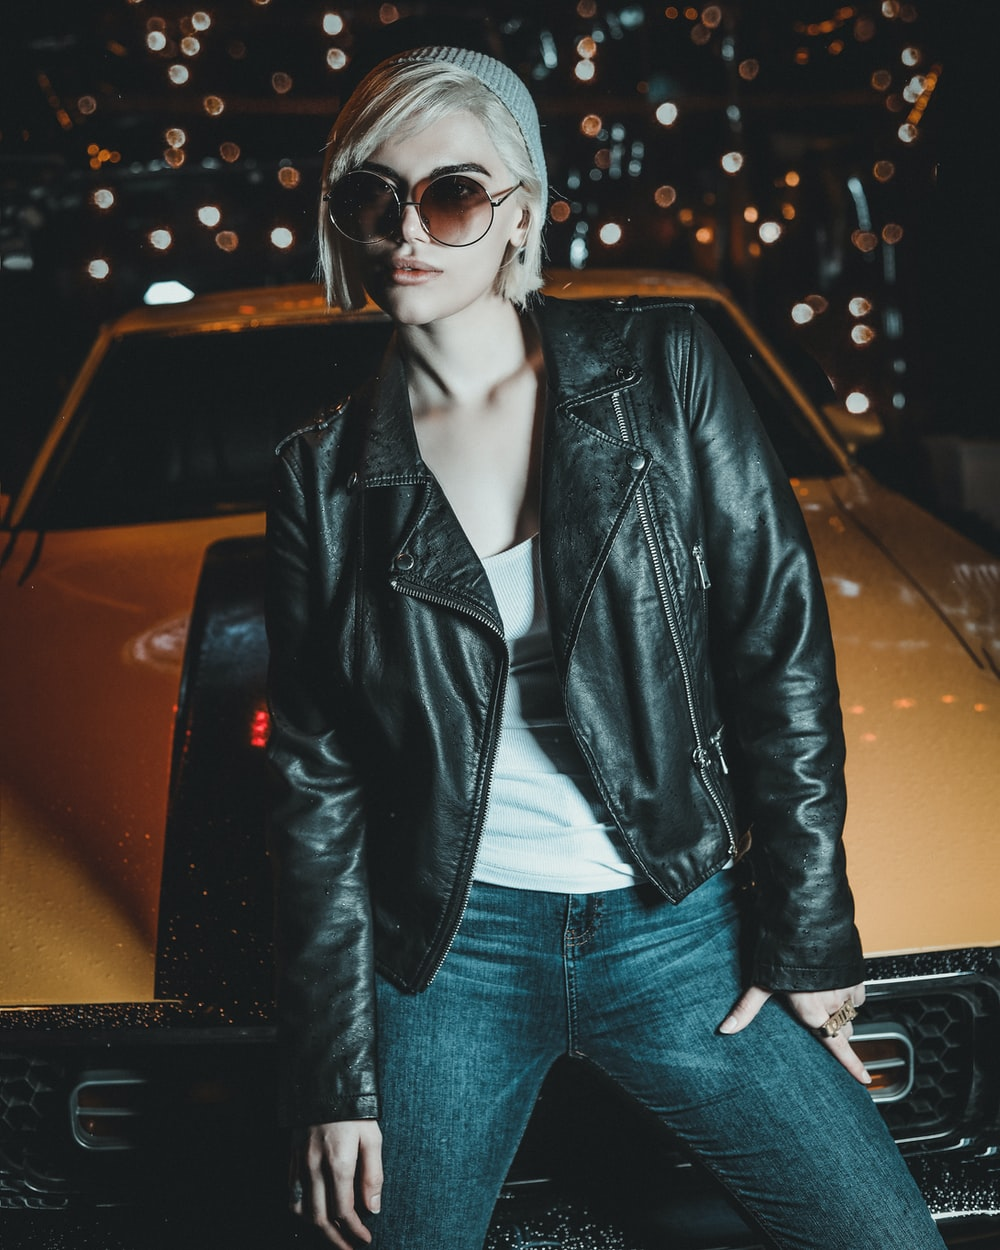 woman in black leather jacket and blue denim jeans wearing black sunglasses